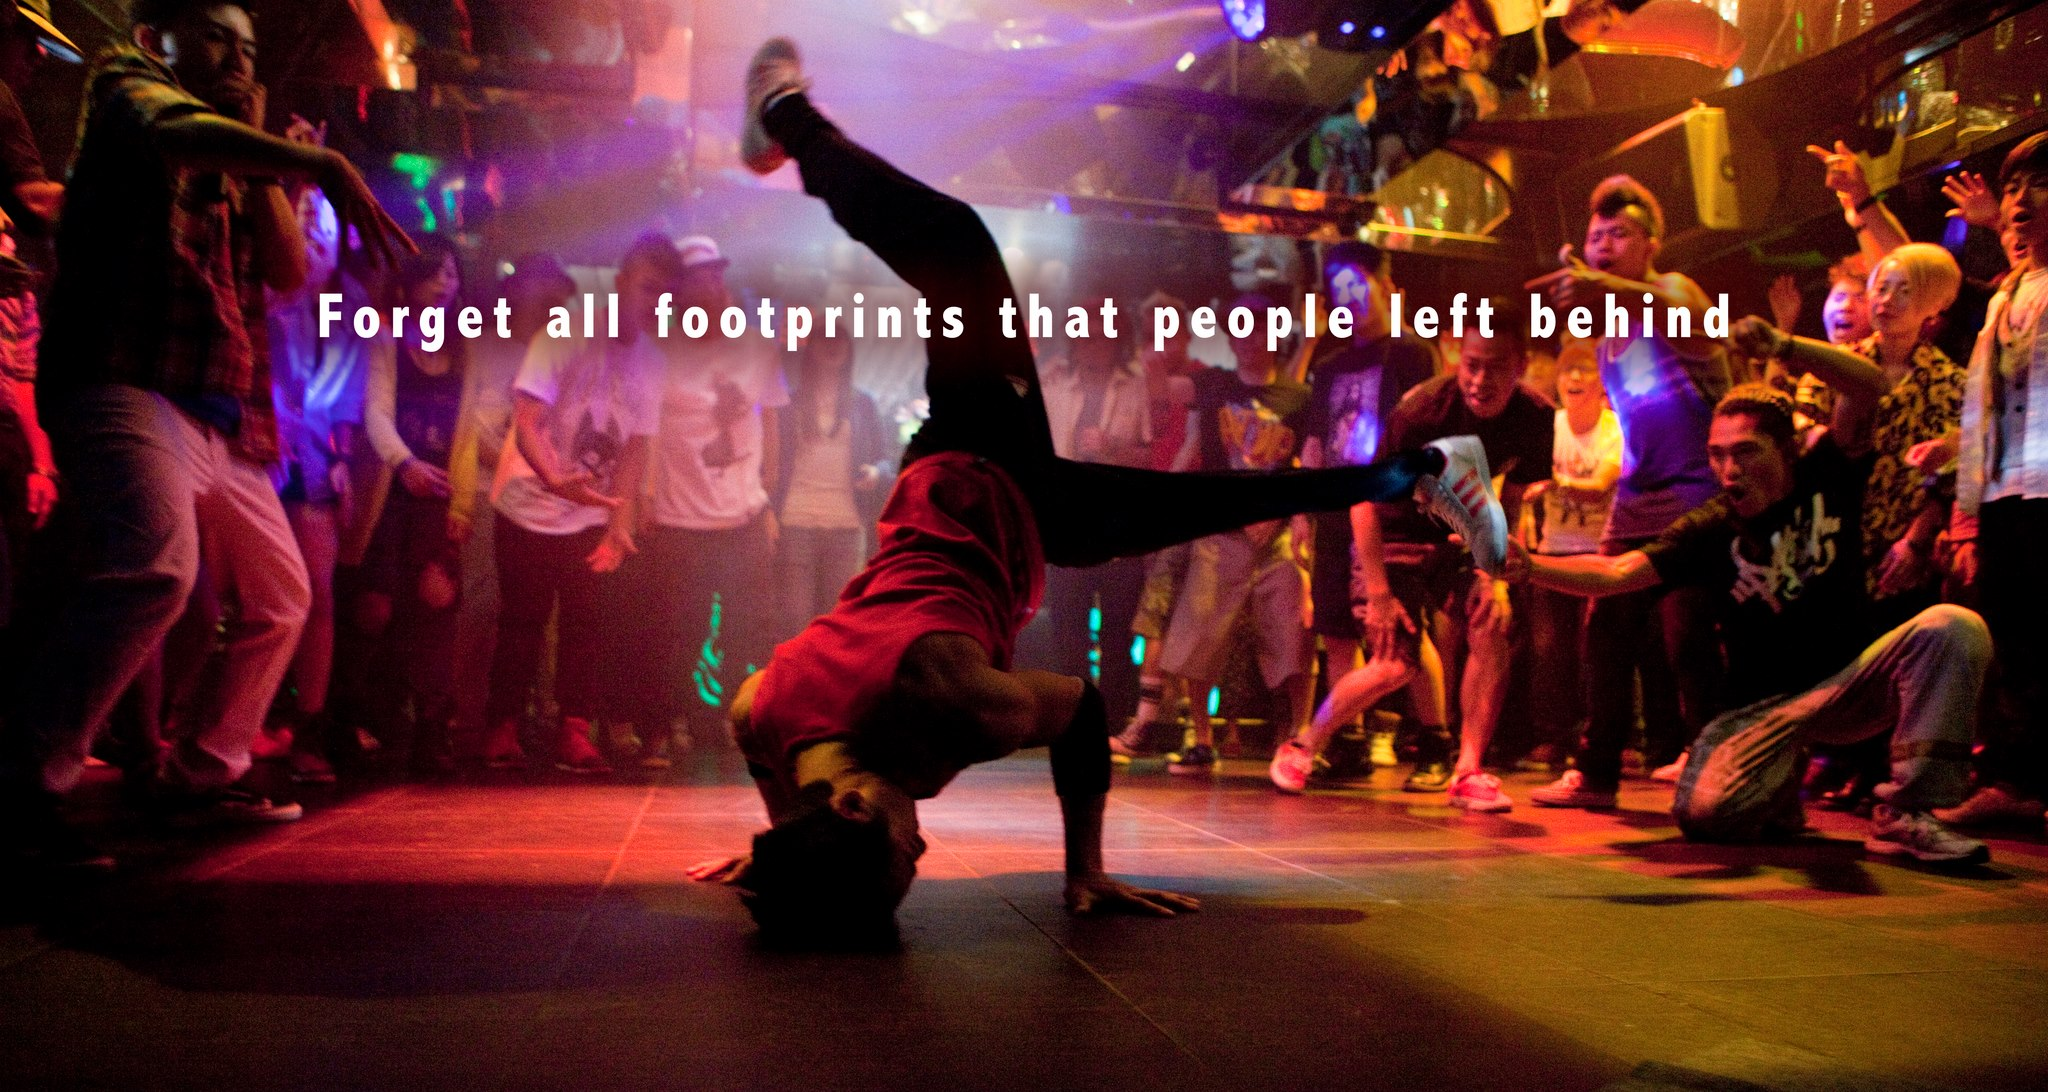 HKIFF Review: The Way We Dance 狂舞派 (2013) - Hong Kong